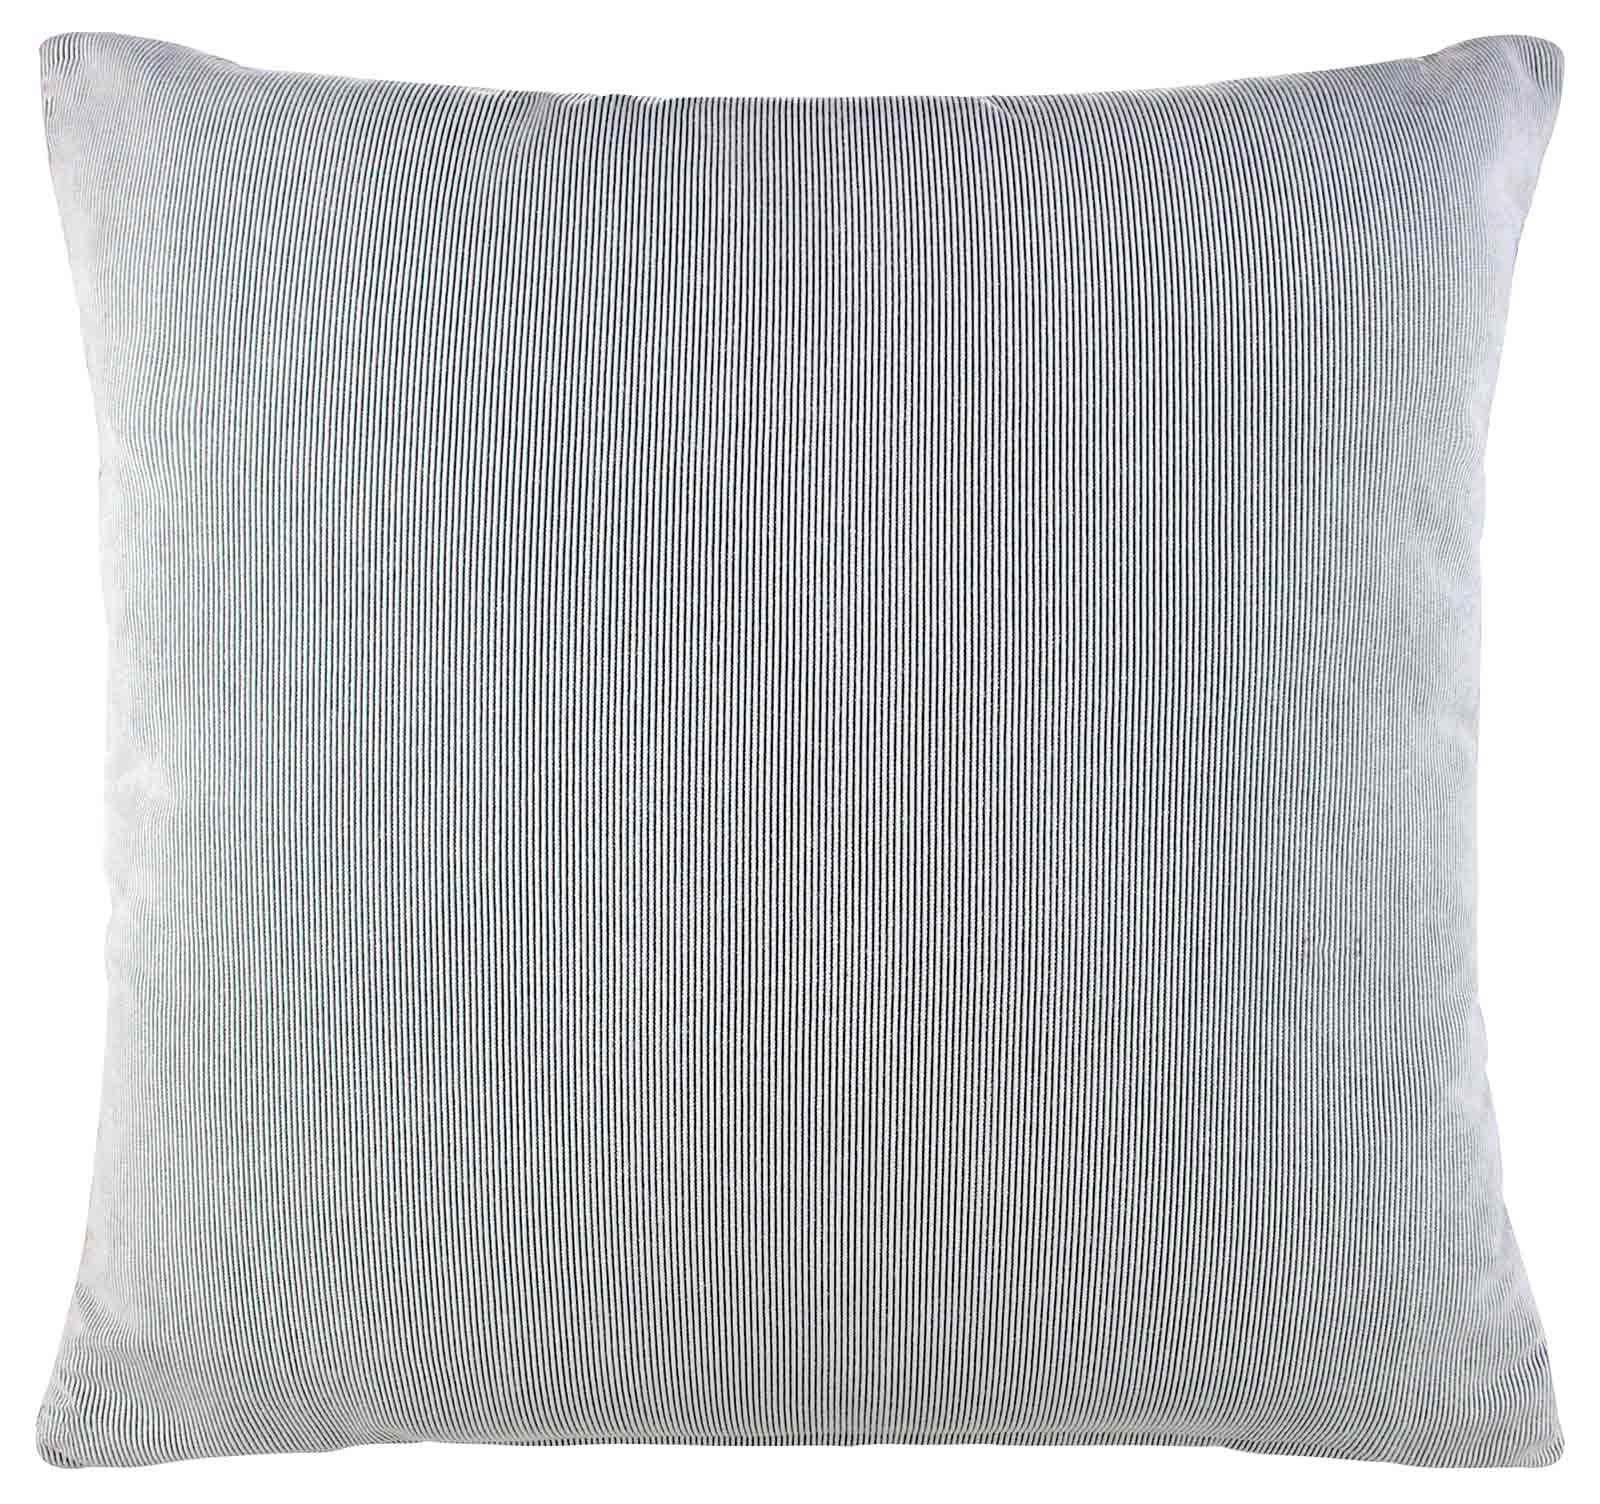 Luxury Throw Pillow Covers : LUXURY CORD CUSHION COVER 18